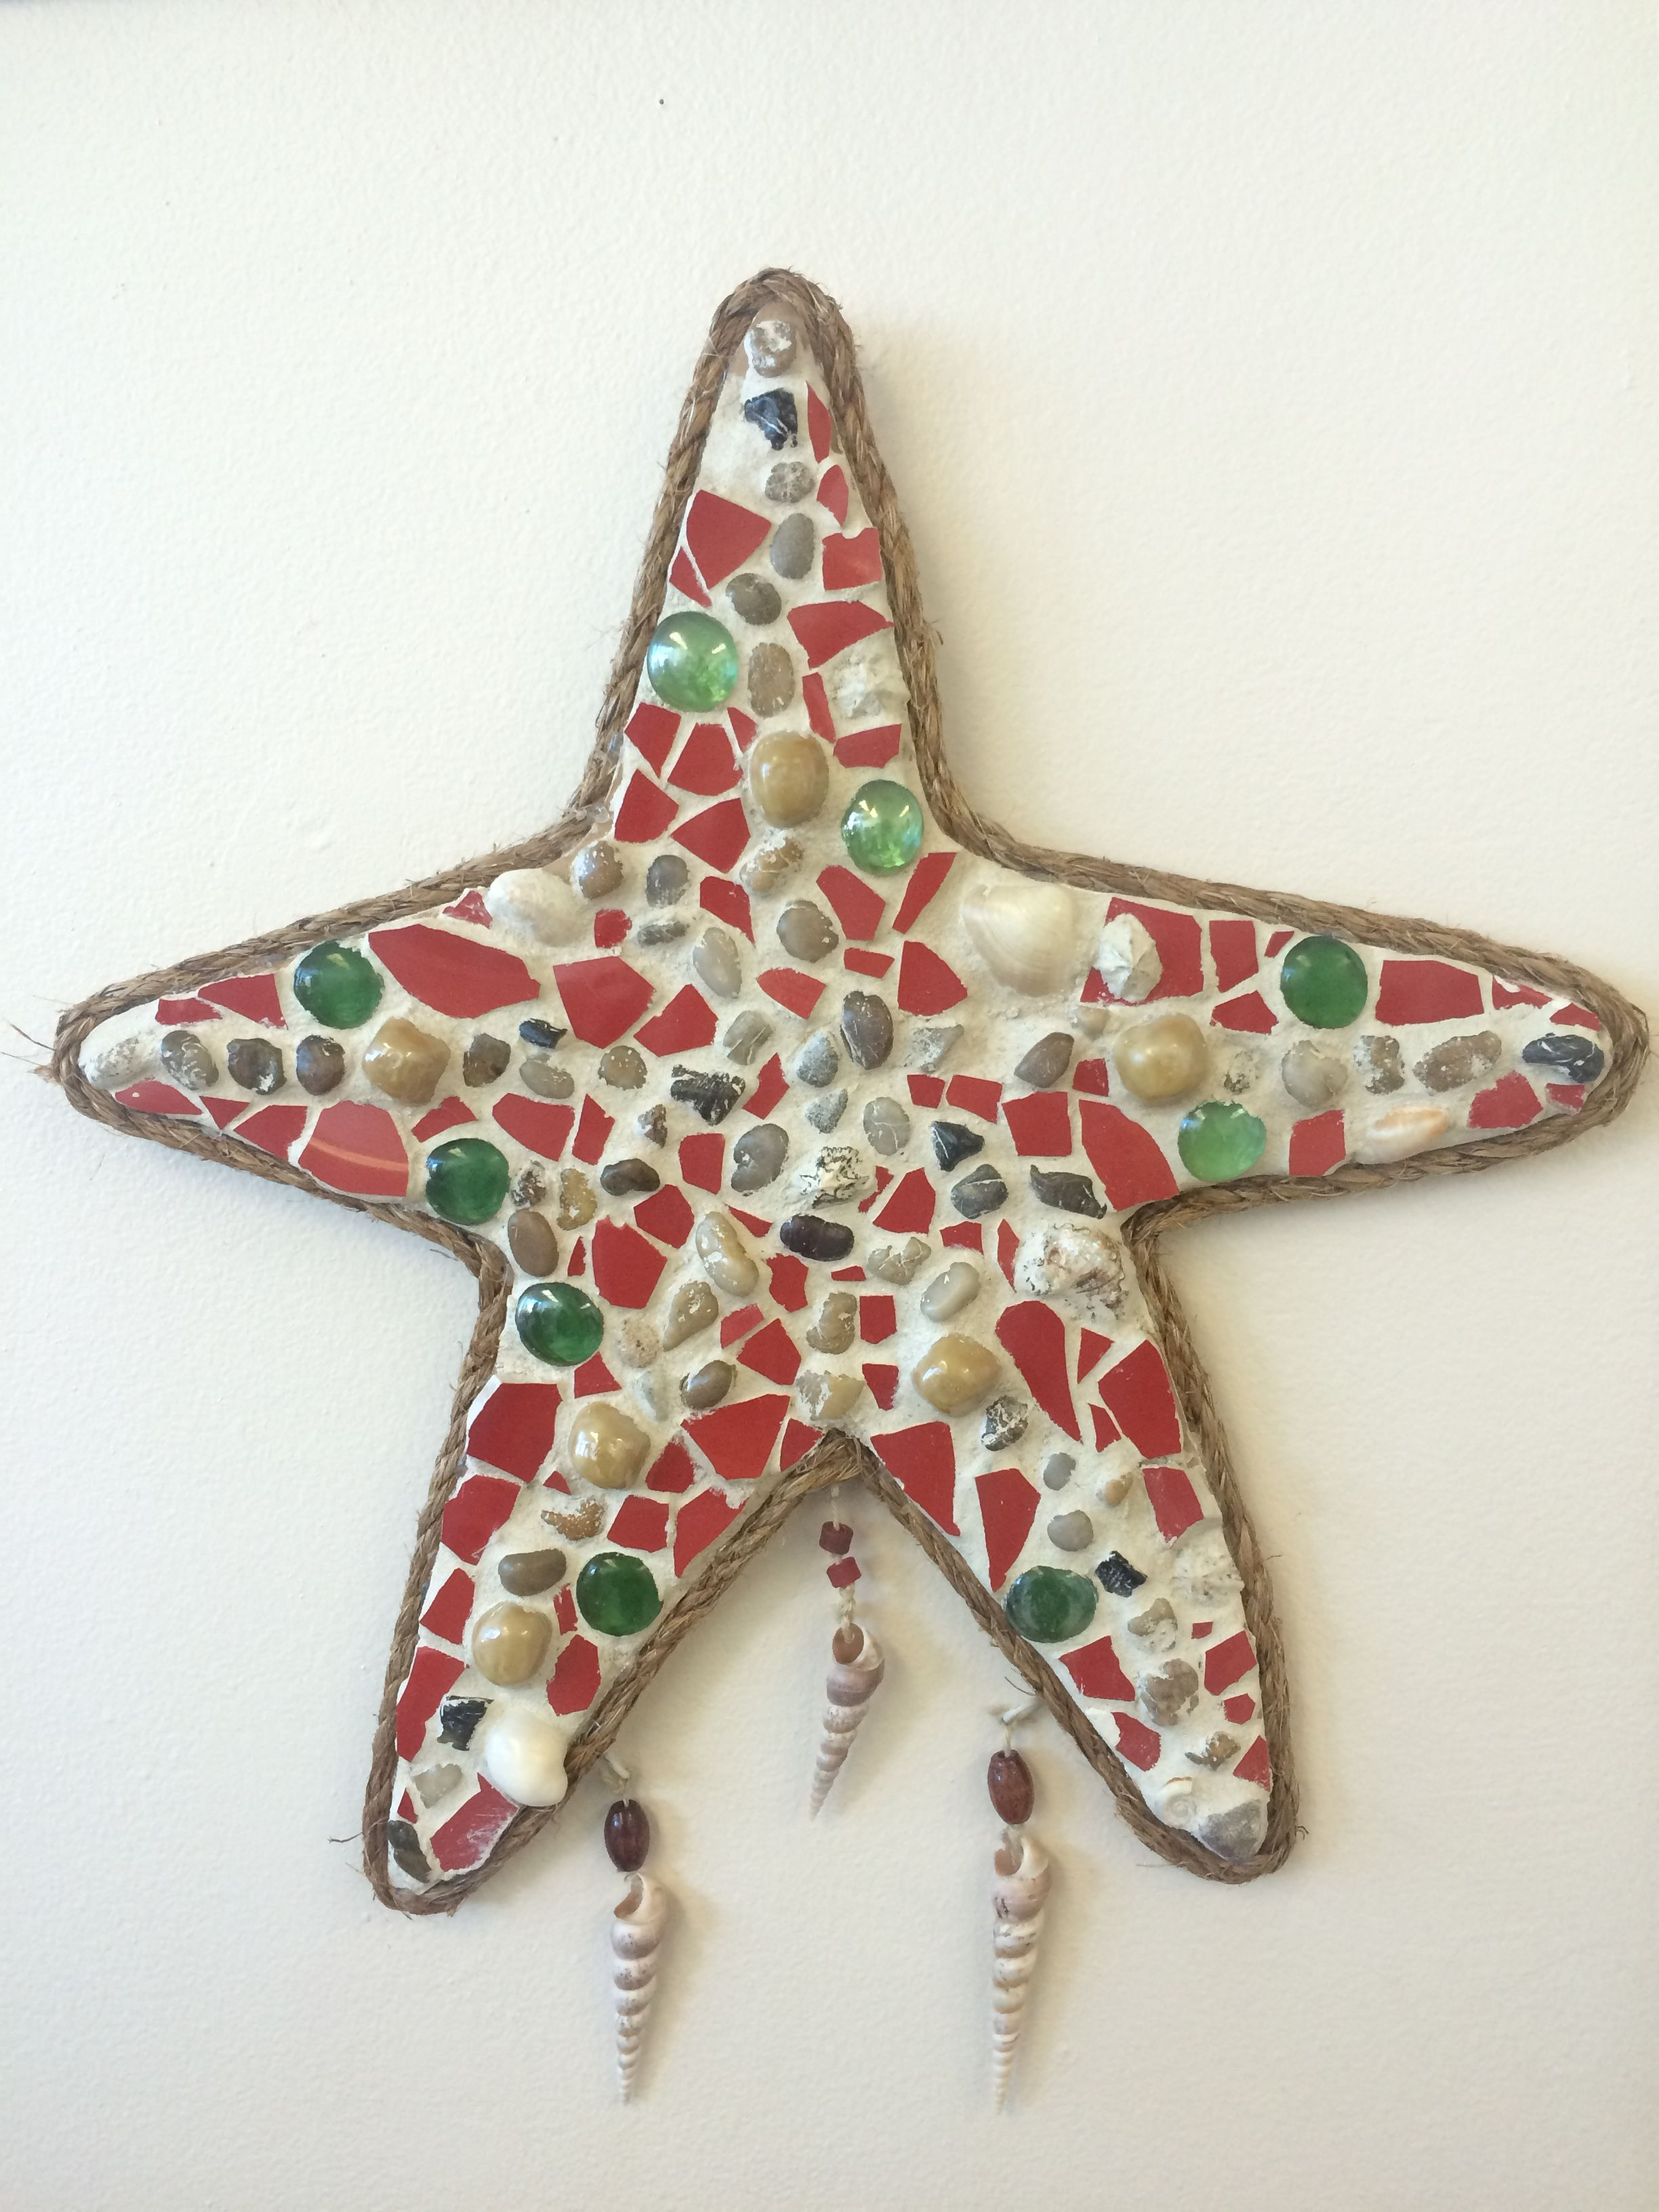 Creative starfish mosaic handcrafted by adults with